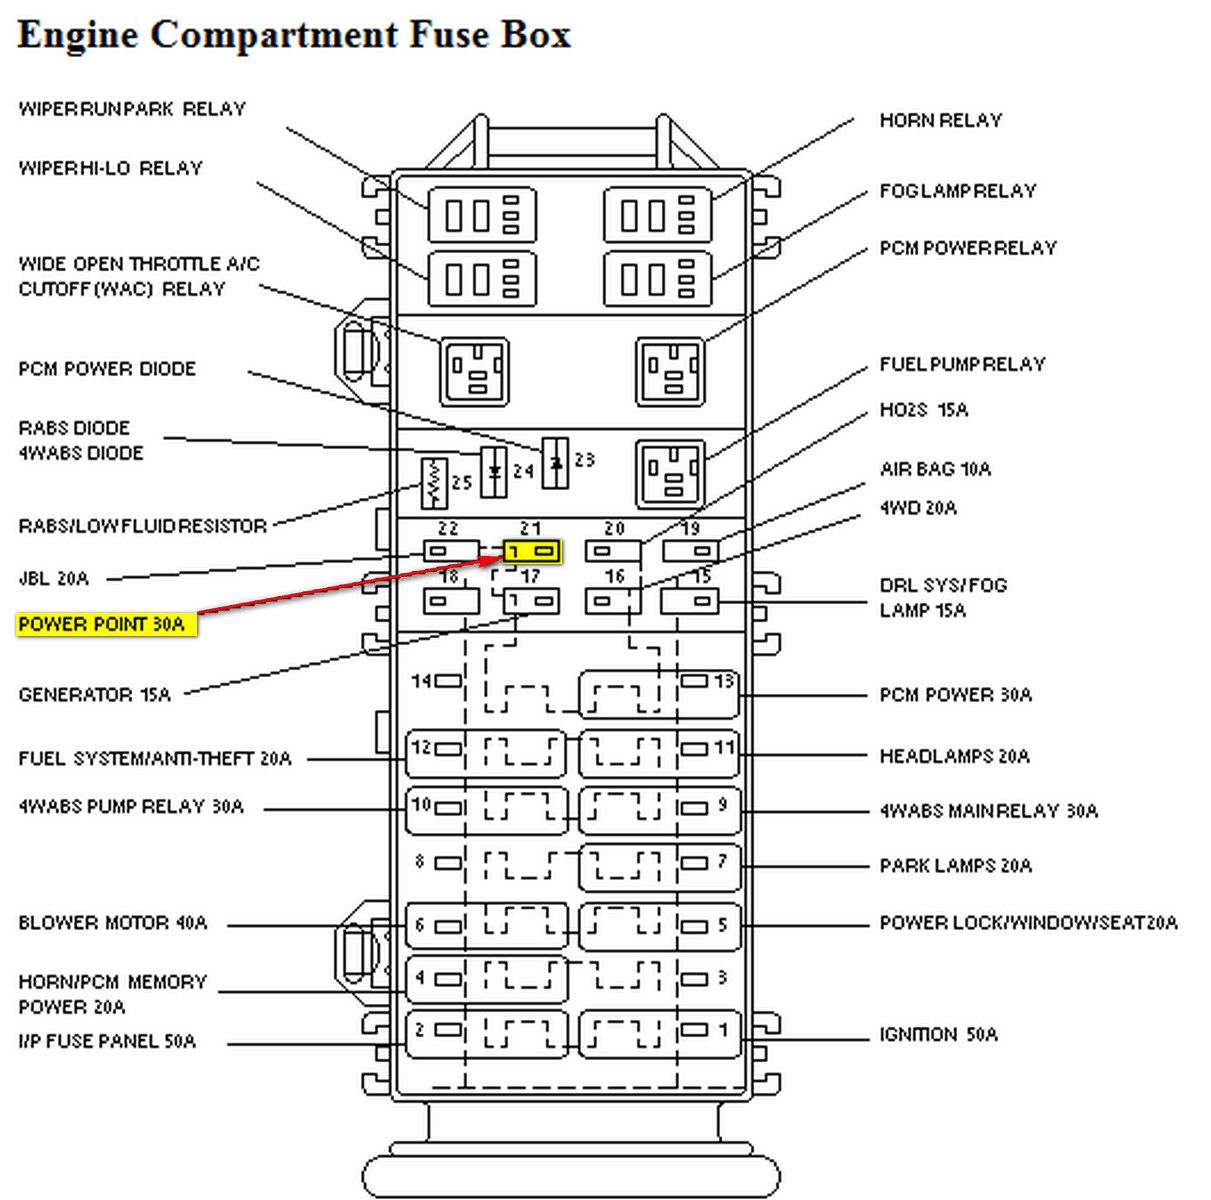 hight resolution of 2002 ford ranger fuse diagram 1997 ford ranger fuse box diagram